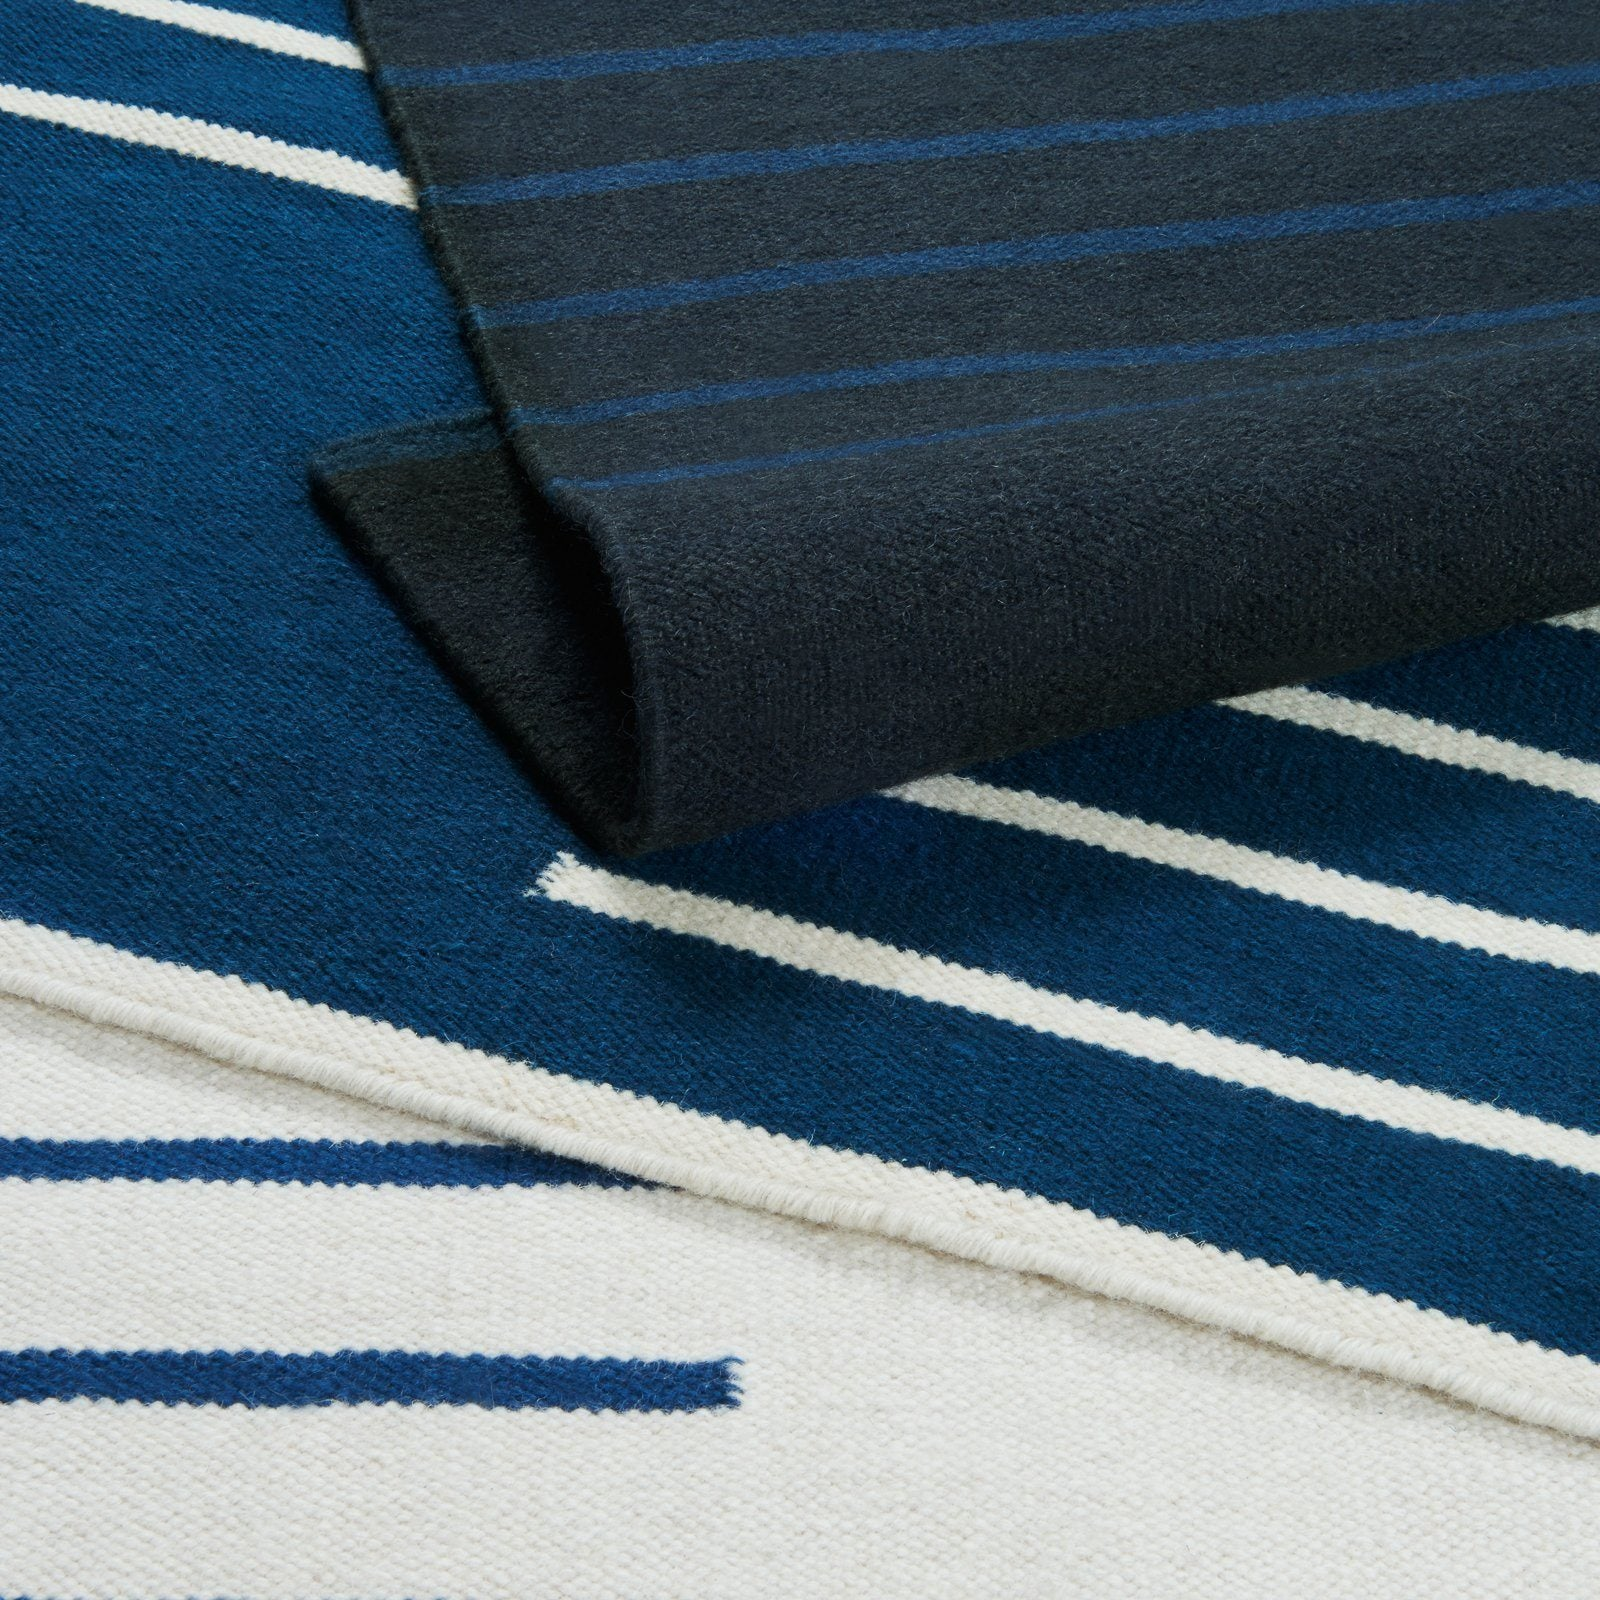 exquisite detail lubois country full antique french x blue rugs product size wool rug